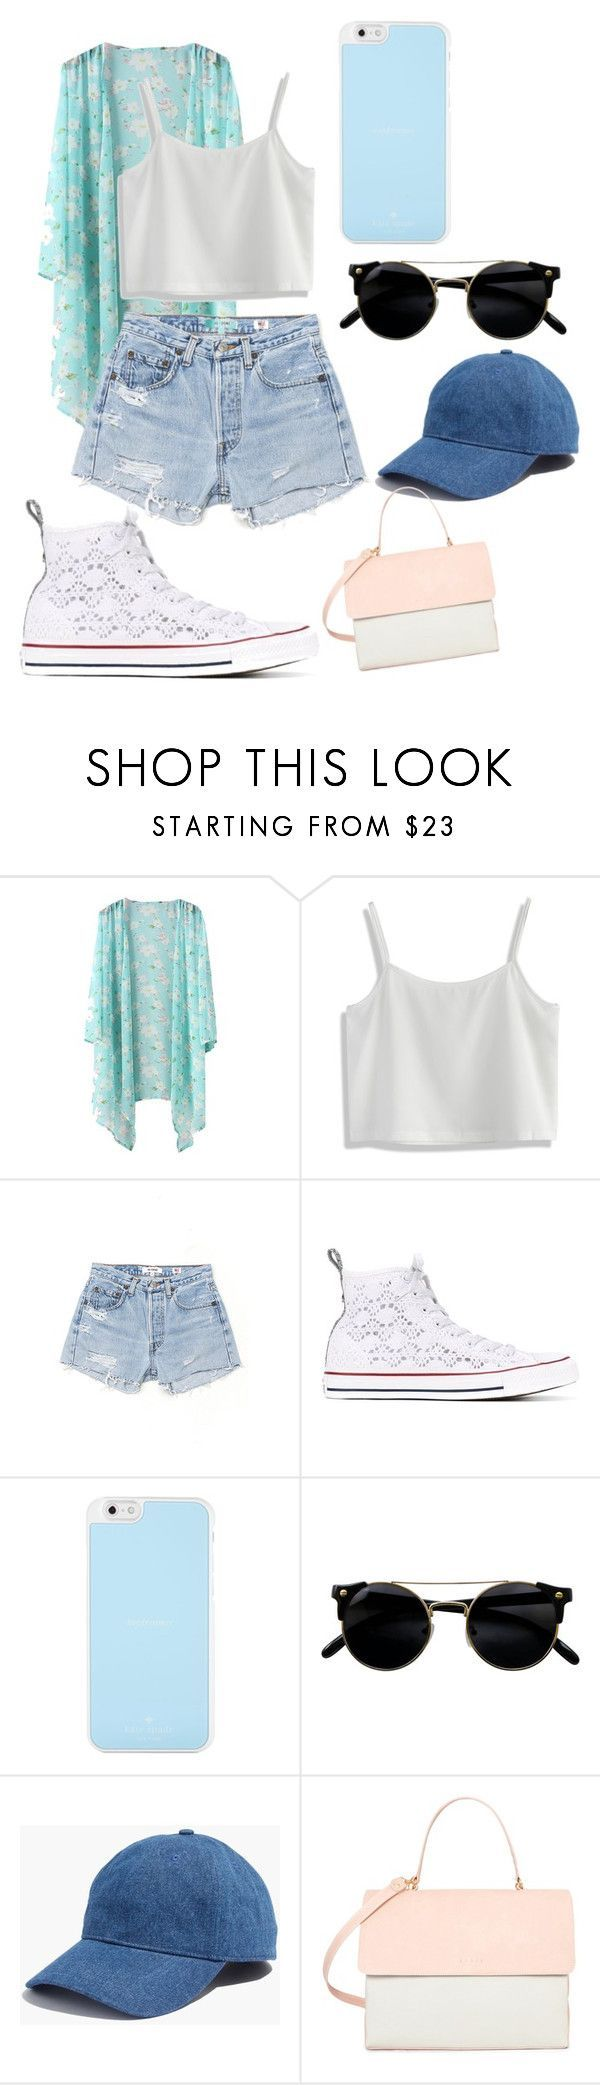 """Counting the Days Until School's Out"" by thatgirl6411xx ❤ liked on Polyvore featuring Chicwish, RE/DONE, Converse, Kate Spade, Madewell and Eddie"